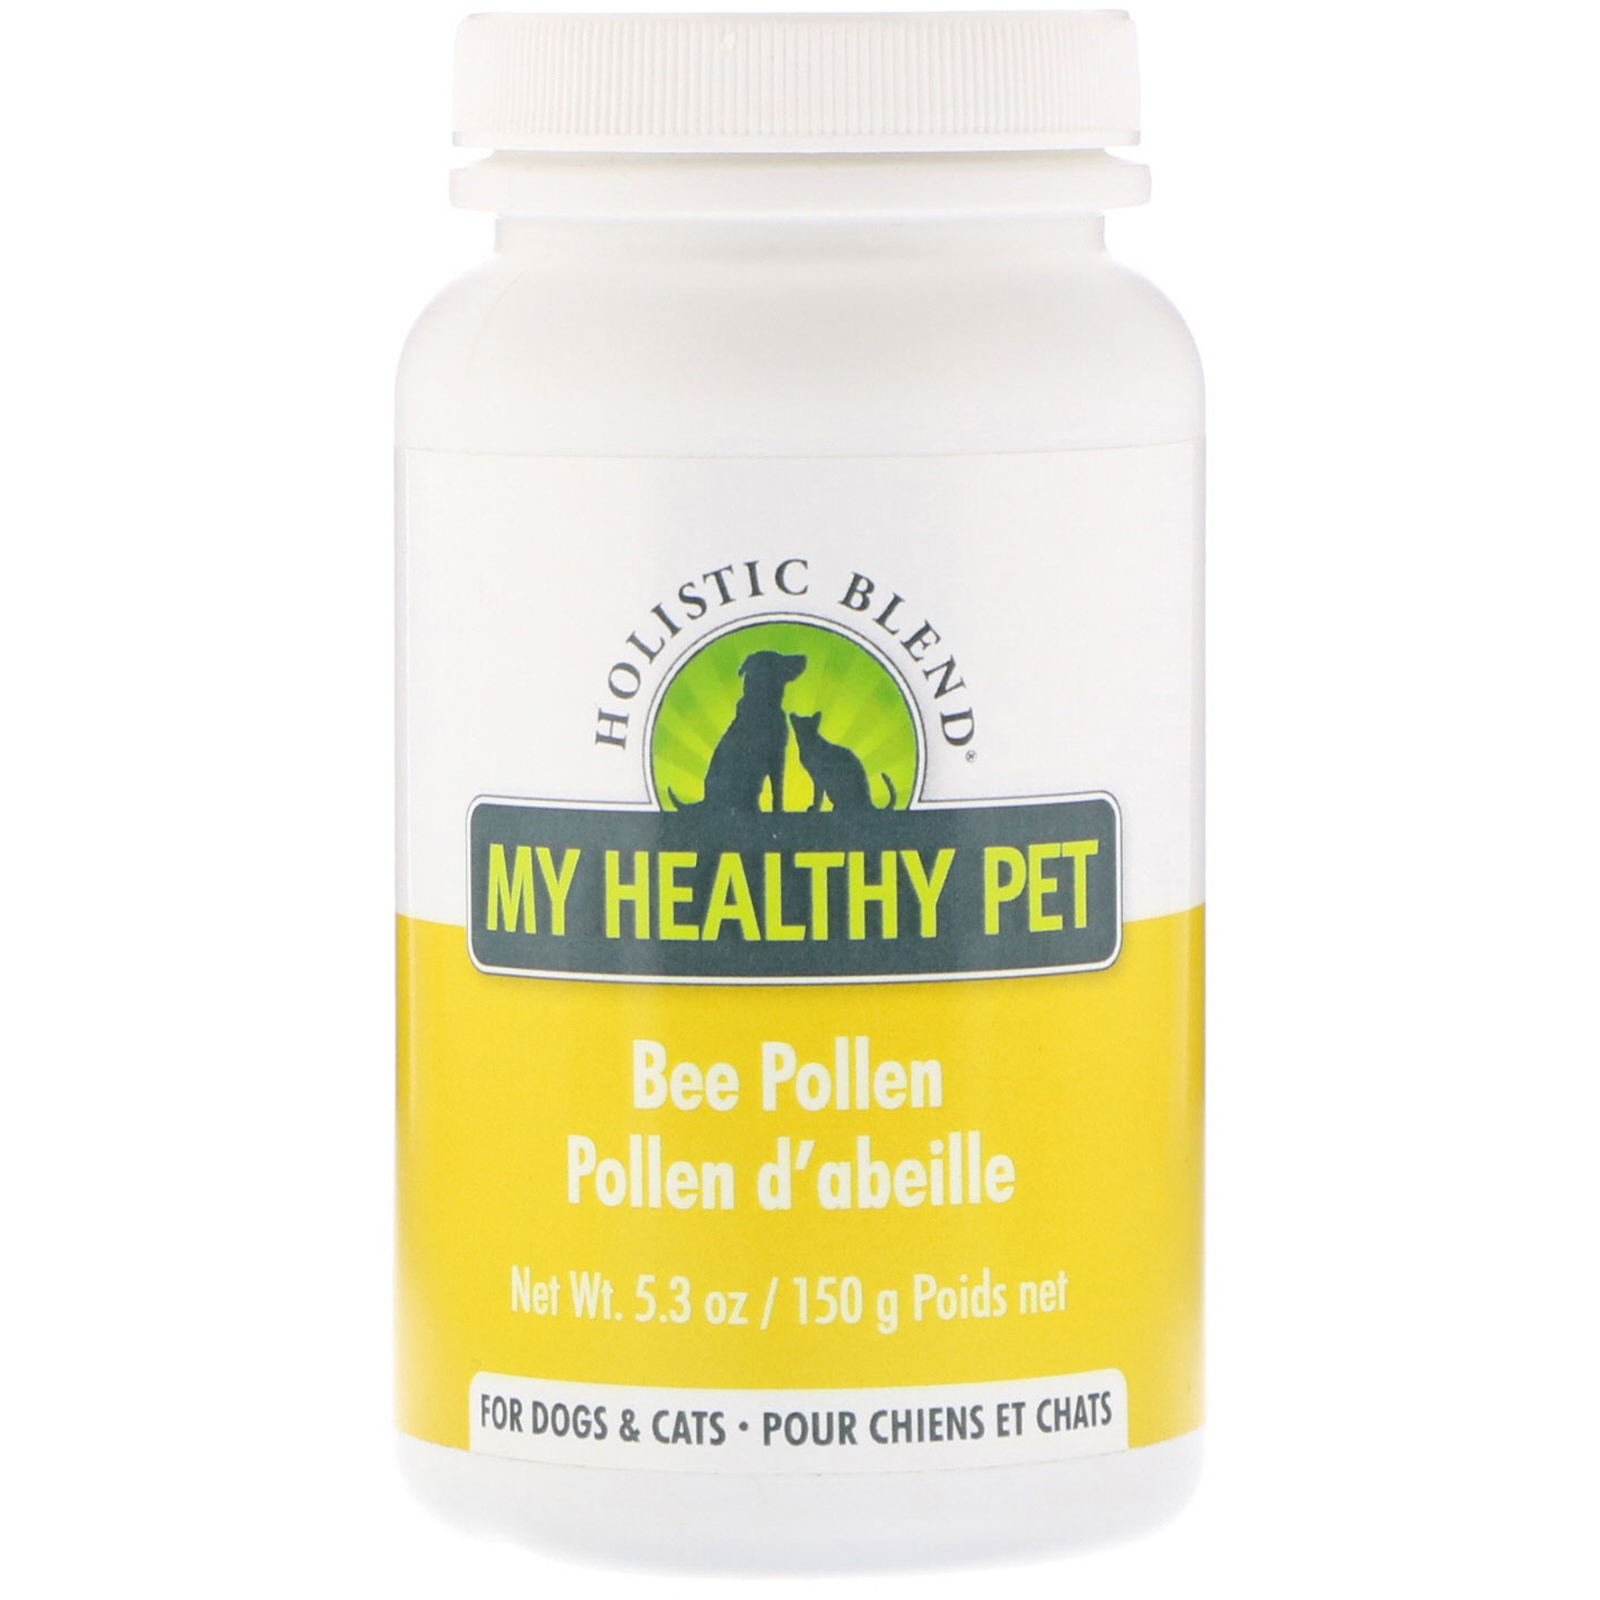 Holistic Blend, My Healthy Pet, Bee Pollen, For Dogs & Cats, 5.3 oz (150 g)  - iHerb